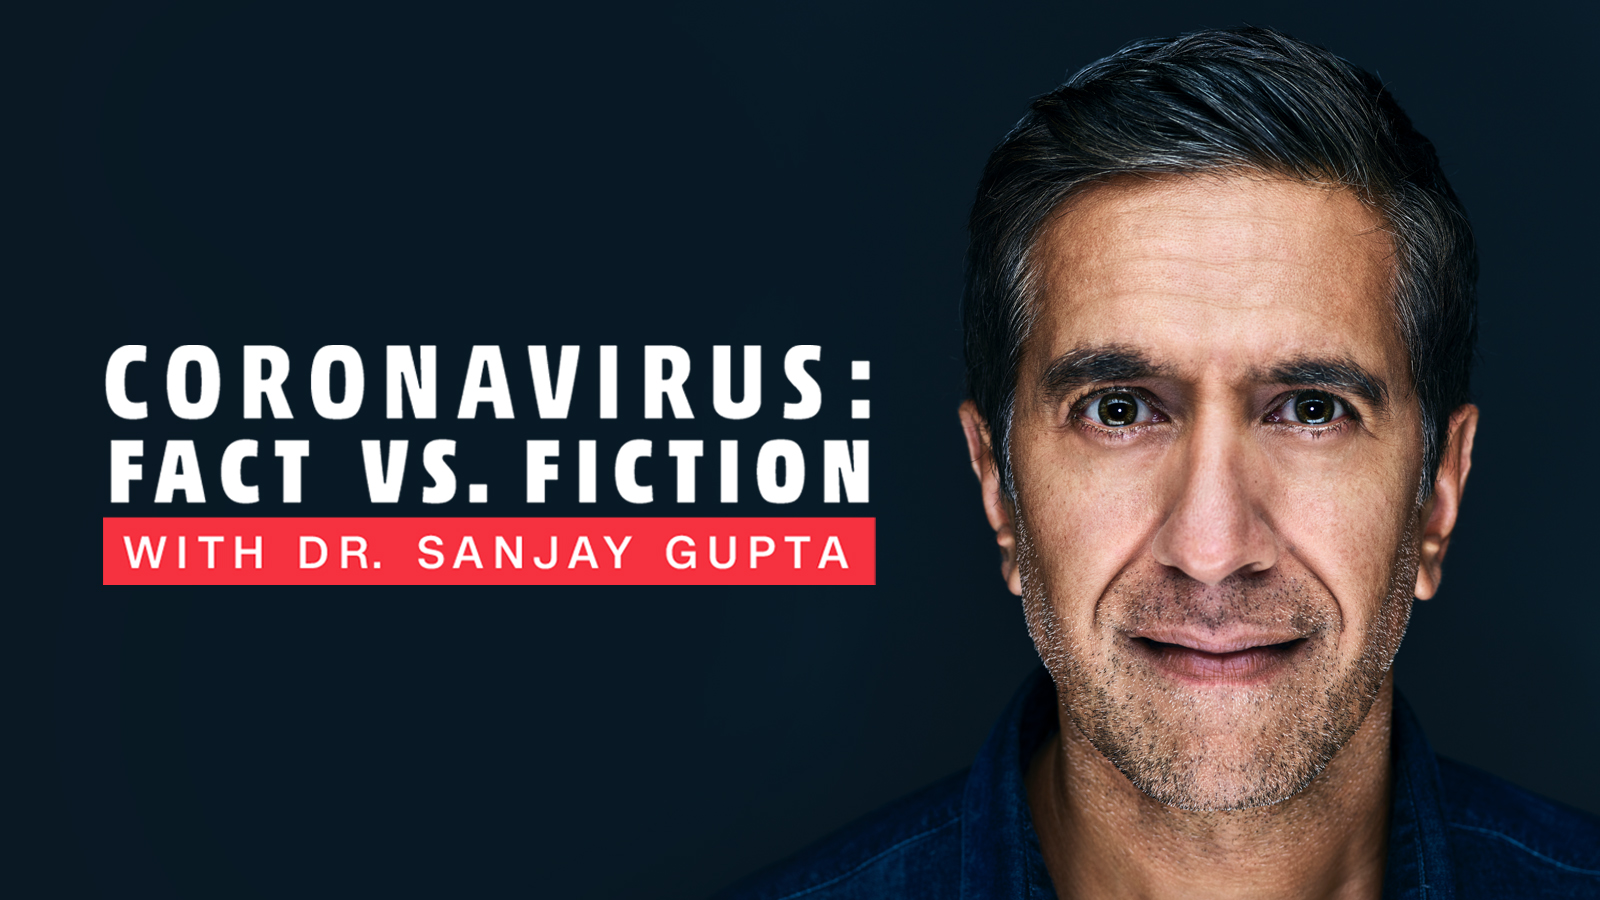 Avoiding a bummer summer: Dr. Sanjay Gupta's coronavirus podcast for May 29